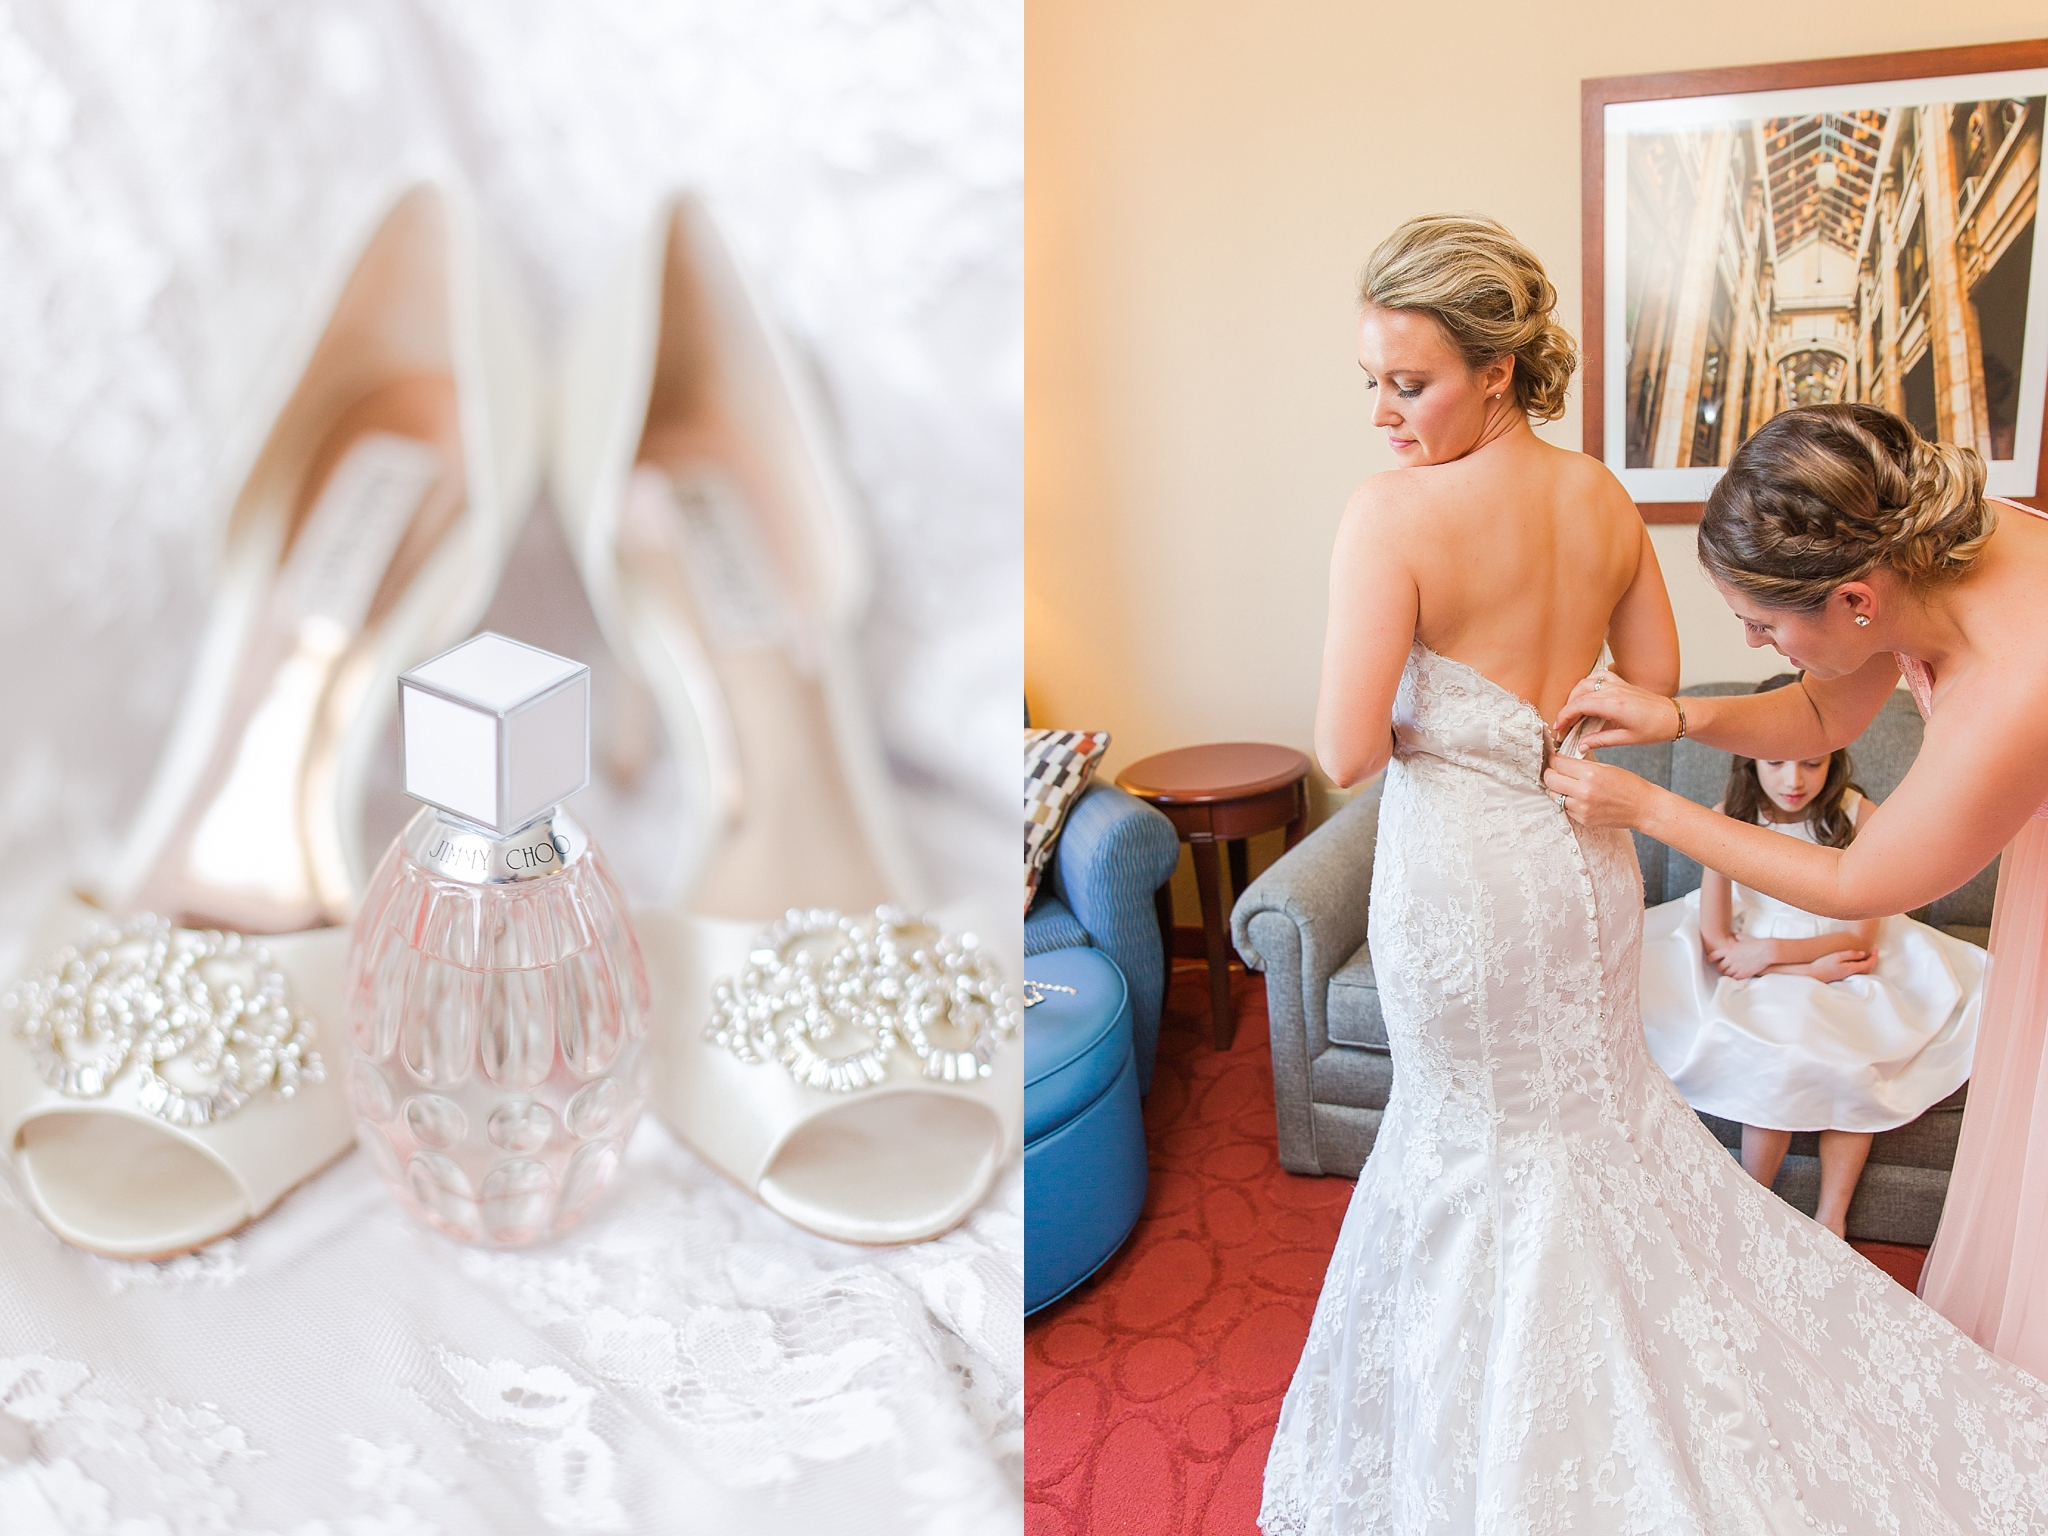 fun-candid-laid-back-wedding-photos-at-wellers-carriage-house-in-saline-michigan-and-at-the-eagle-crest-golf-resort-by-courtney-carolyn-photography_0007.jpg